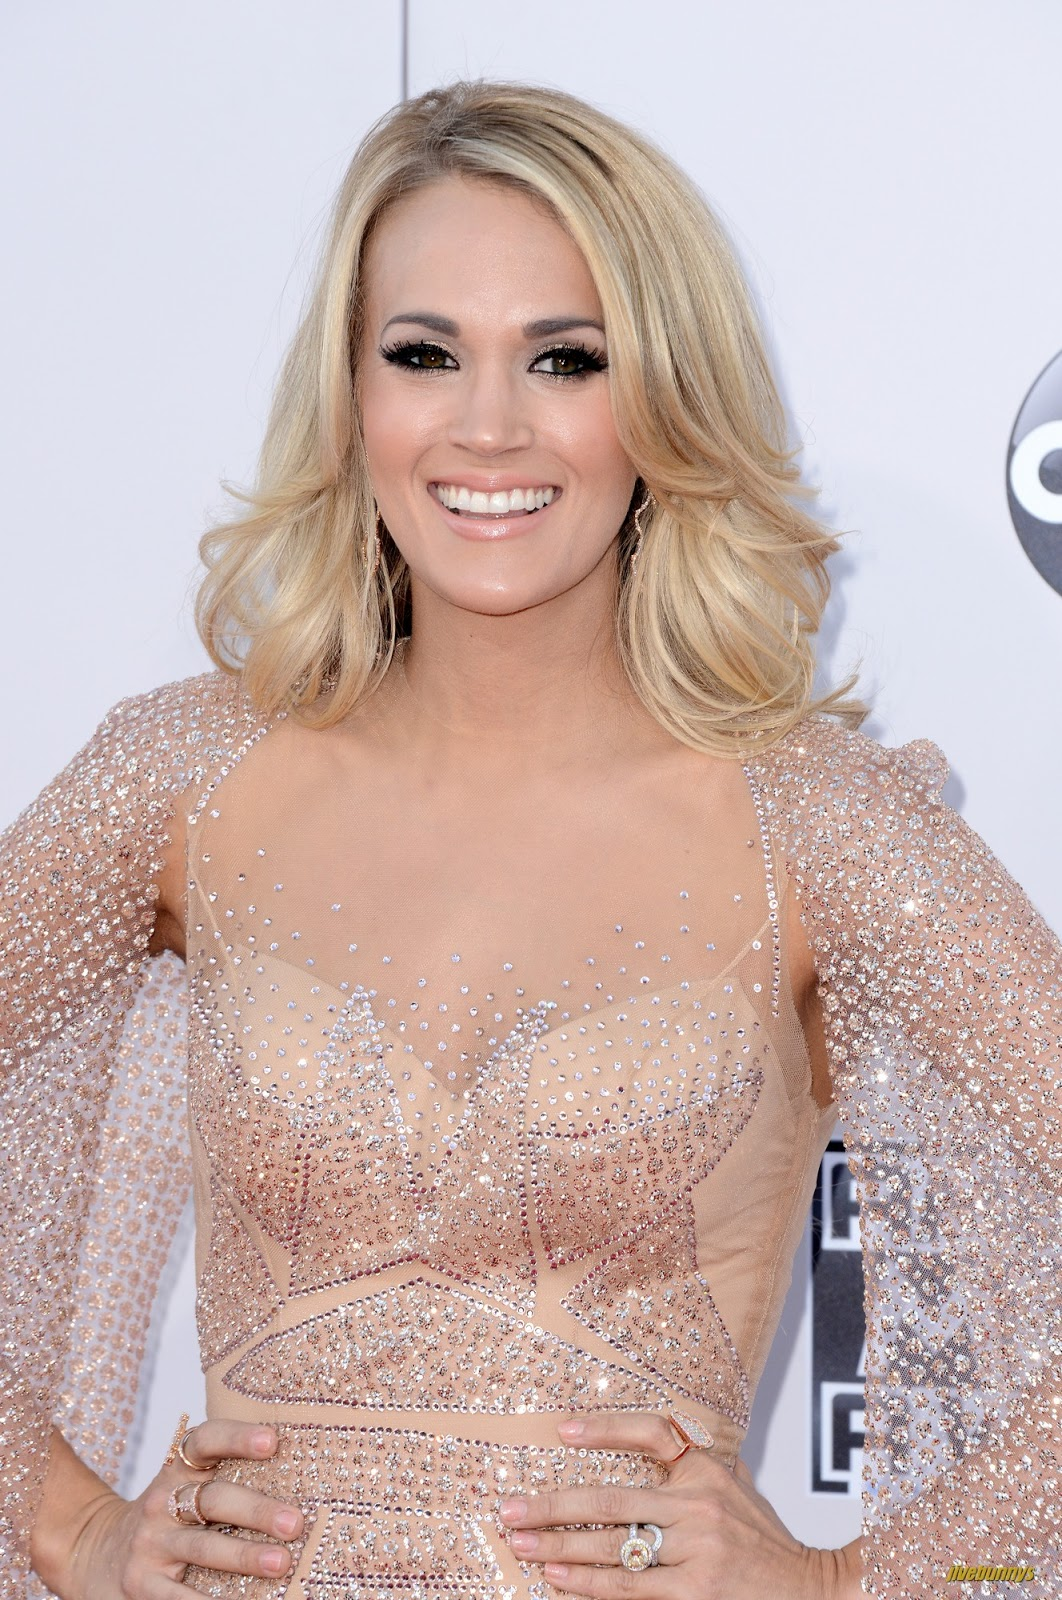 Carrie Underwood Hot Photos Gallery 5